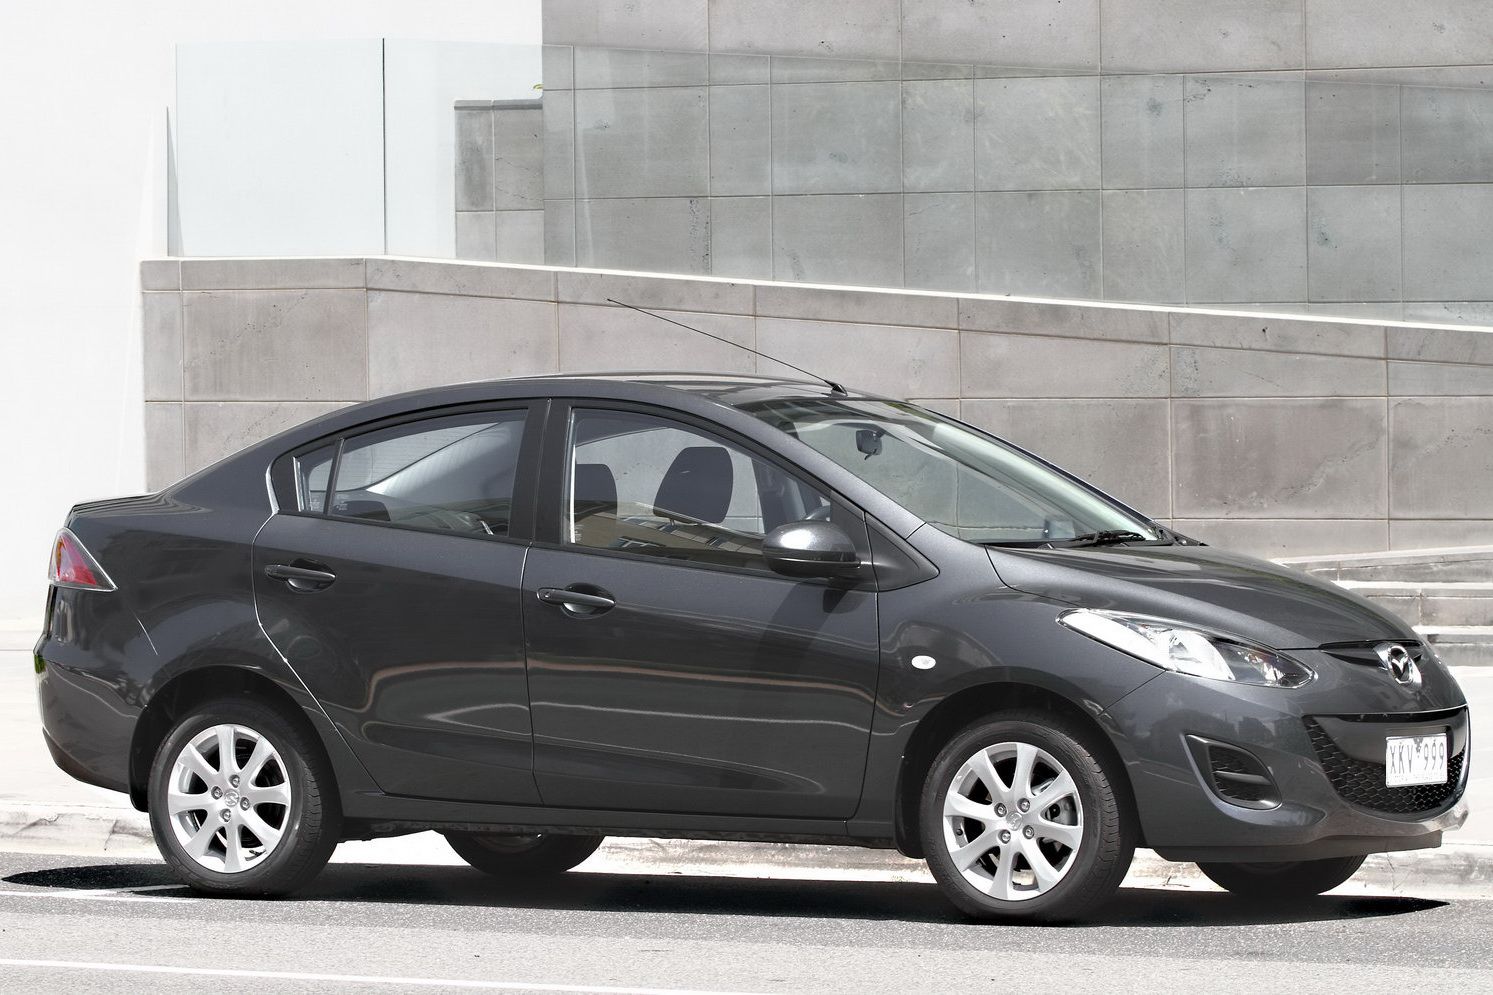 Australia Now You See The New Mazda2 Sedan Now You Don T Carscoops